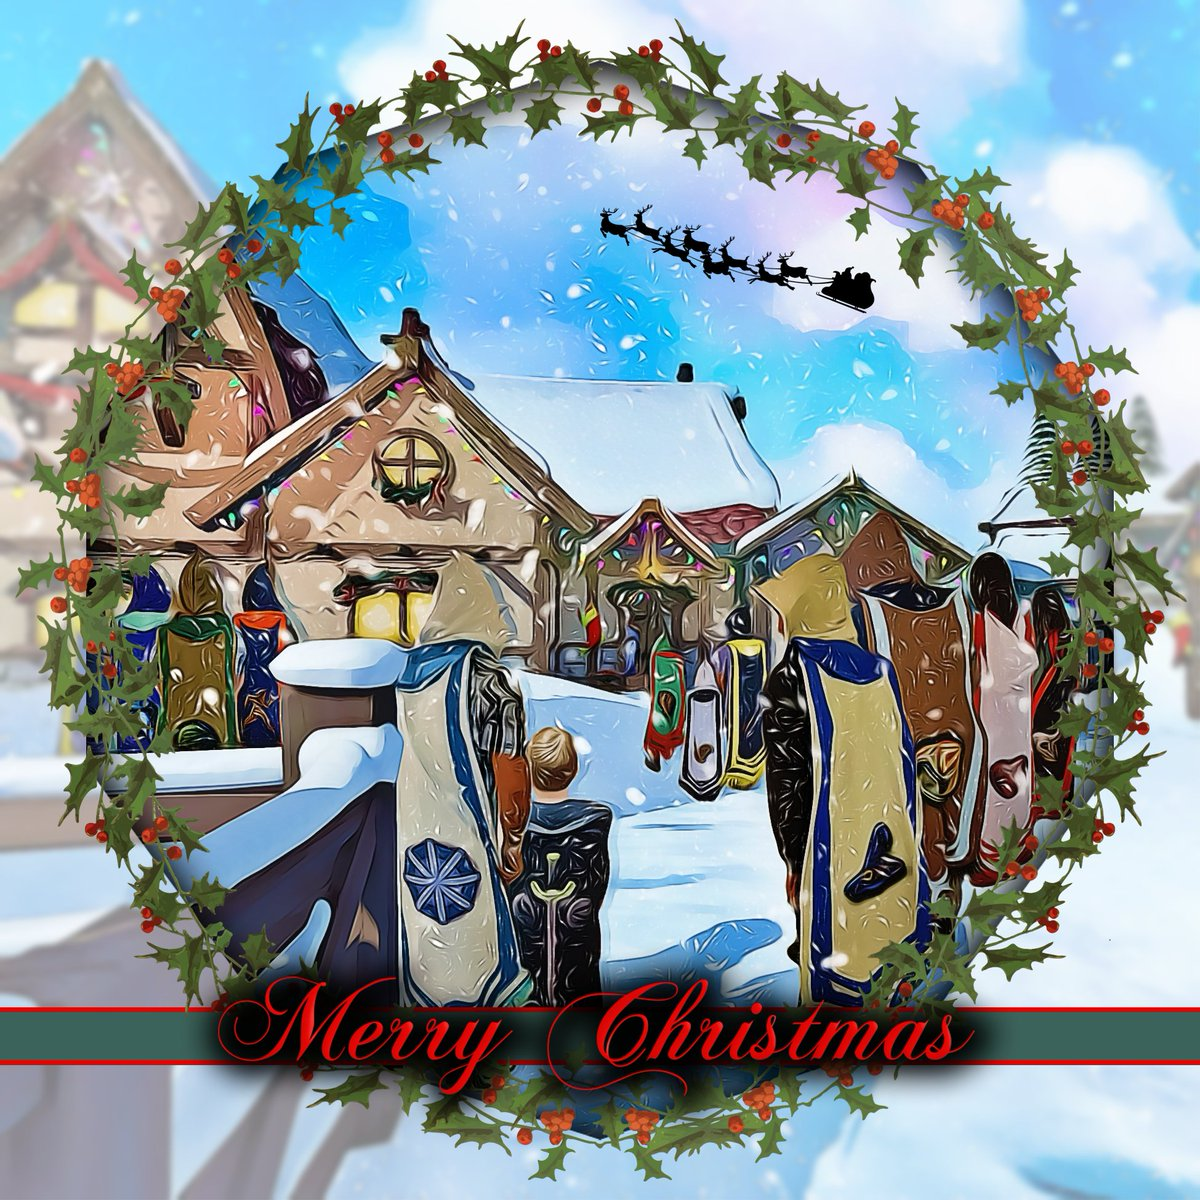 Runescape Christmas 2021 On Twitter Merry Christmas Everyone The Best Of All Gifts Around Any Christmas Tree The Presence Of A Happy Family All Wrapped Up In Each Other Runescape Isn T Just A Game